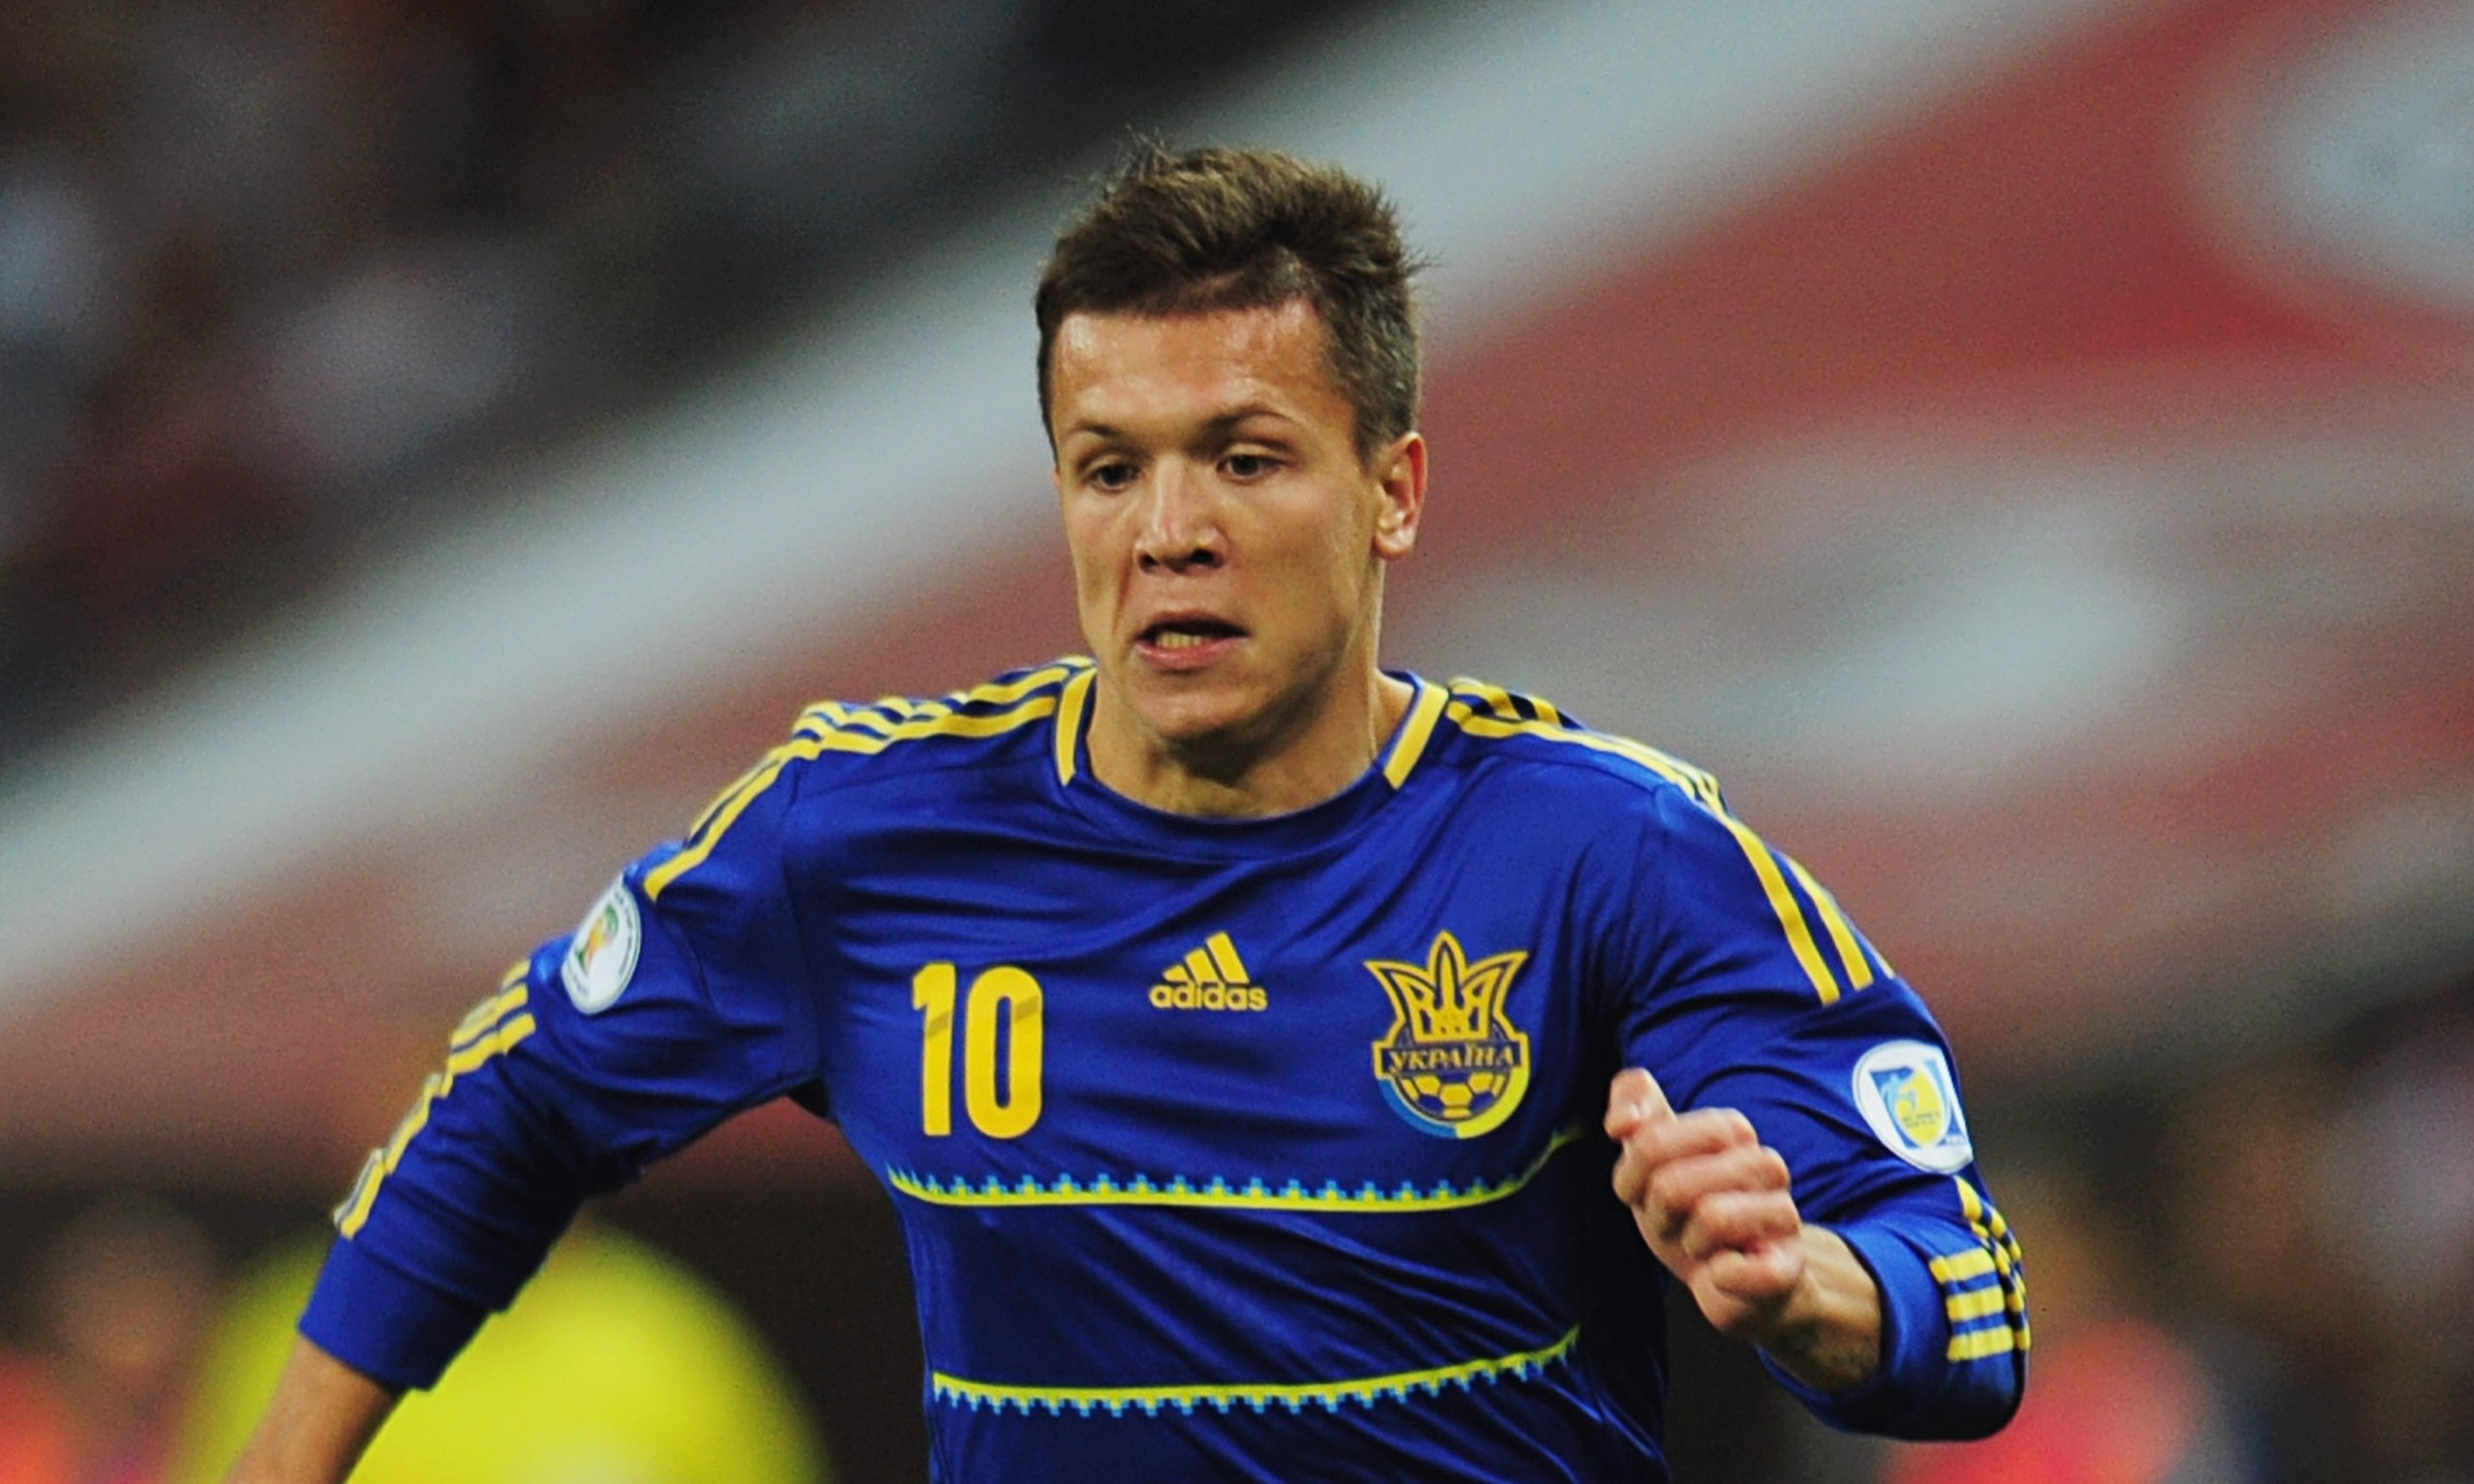 Yevhen Konoplyanka Everton Forum The latest Everton News and